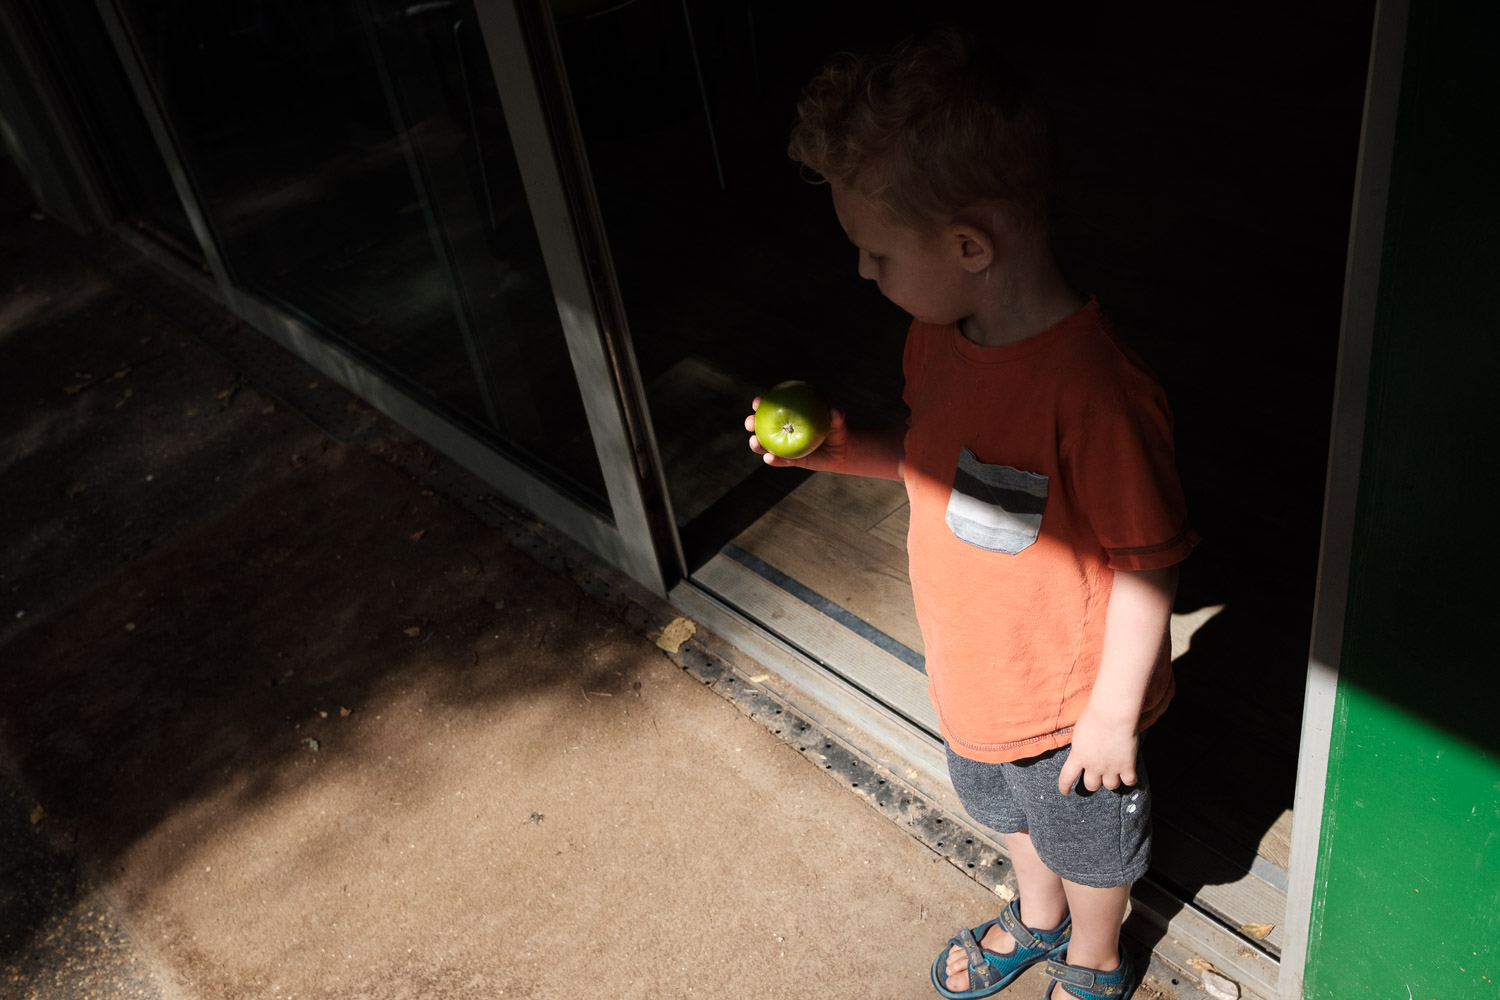 Boy holding an apple between light and shade